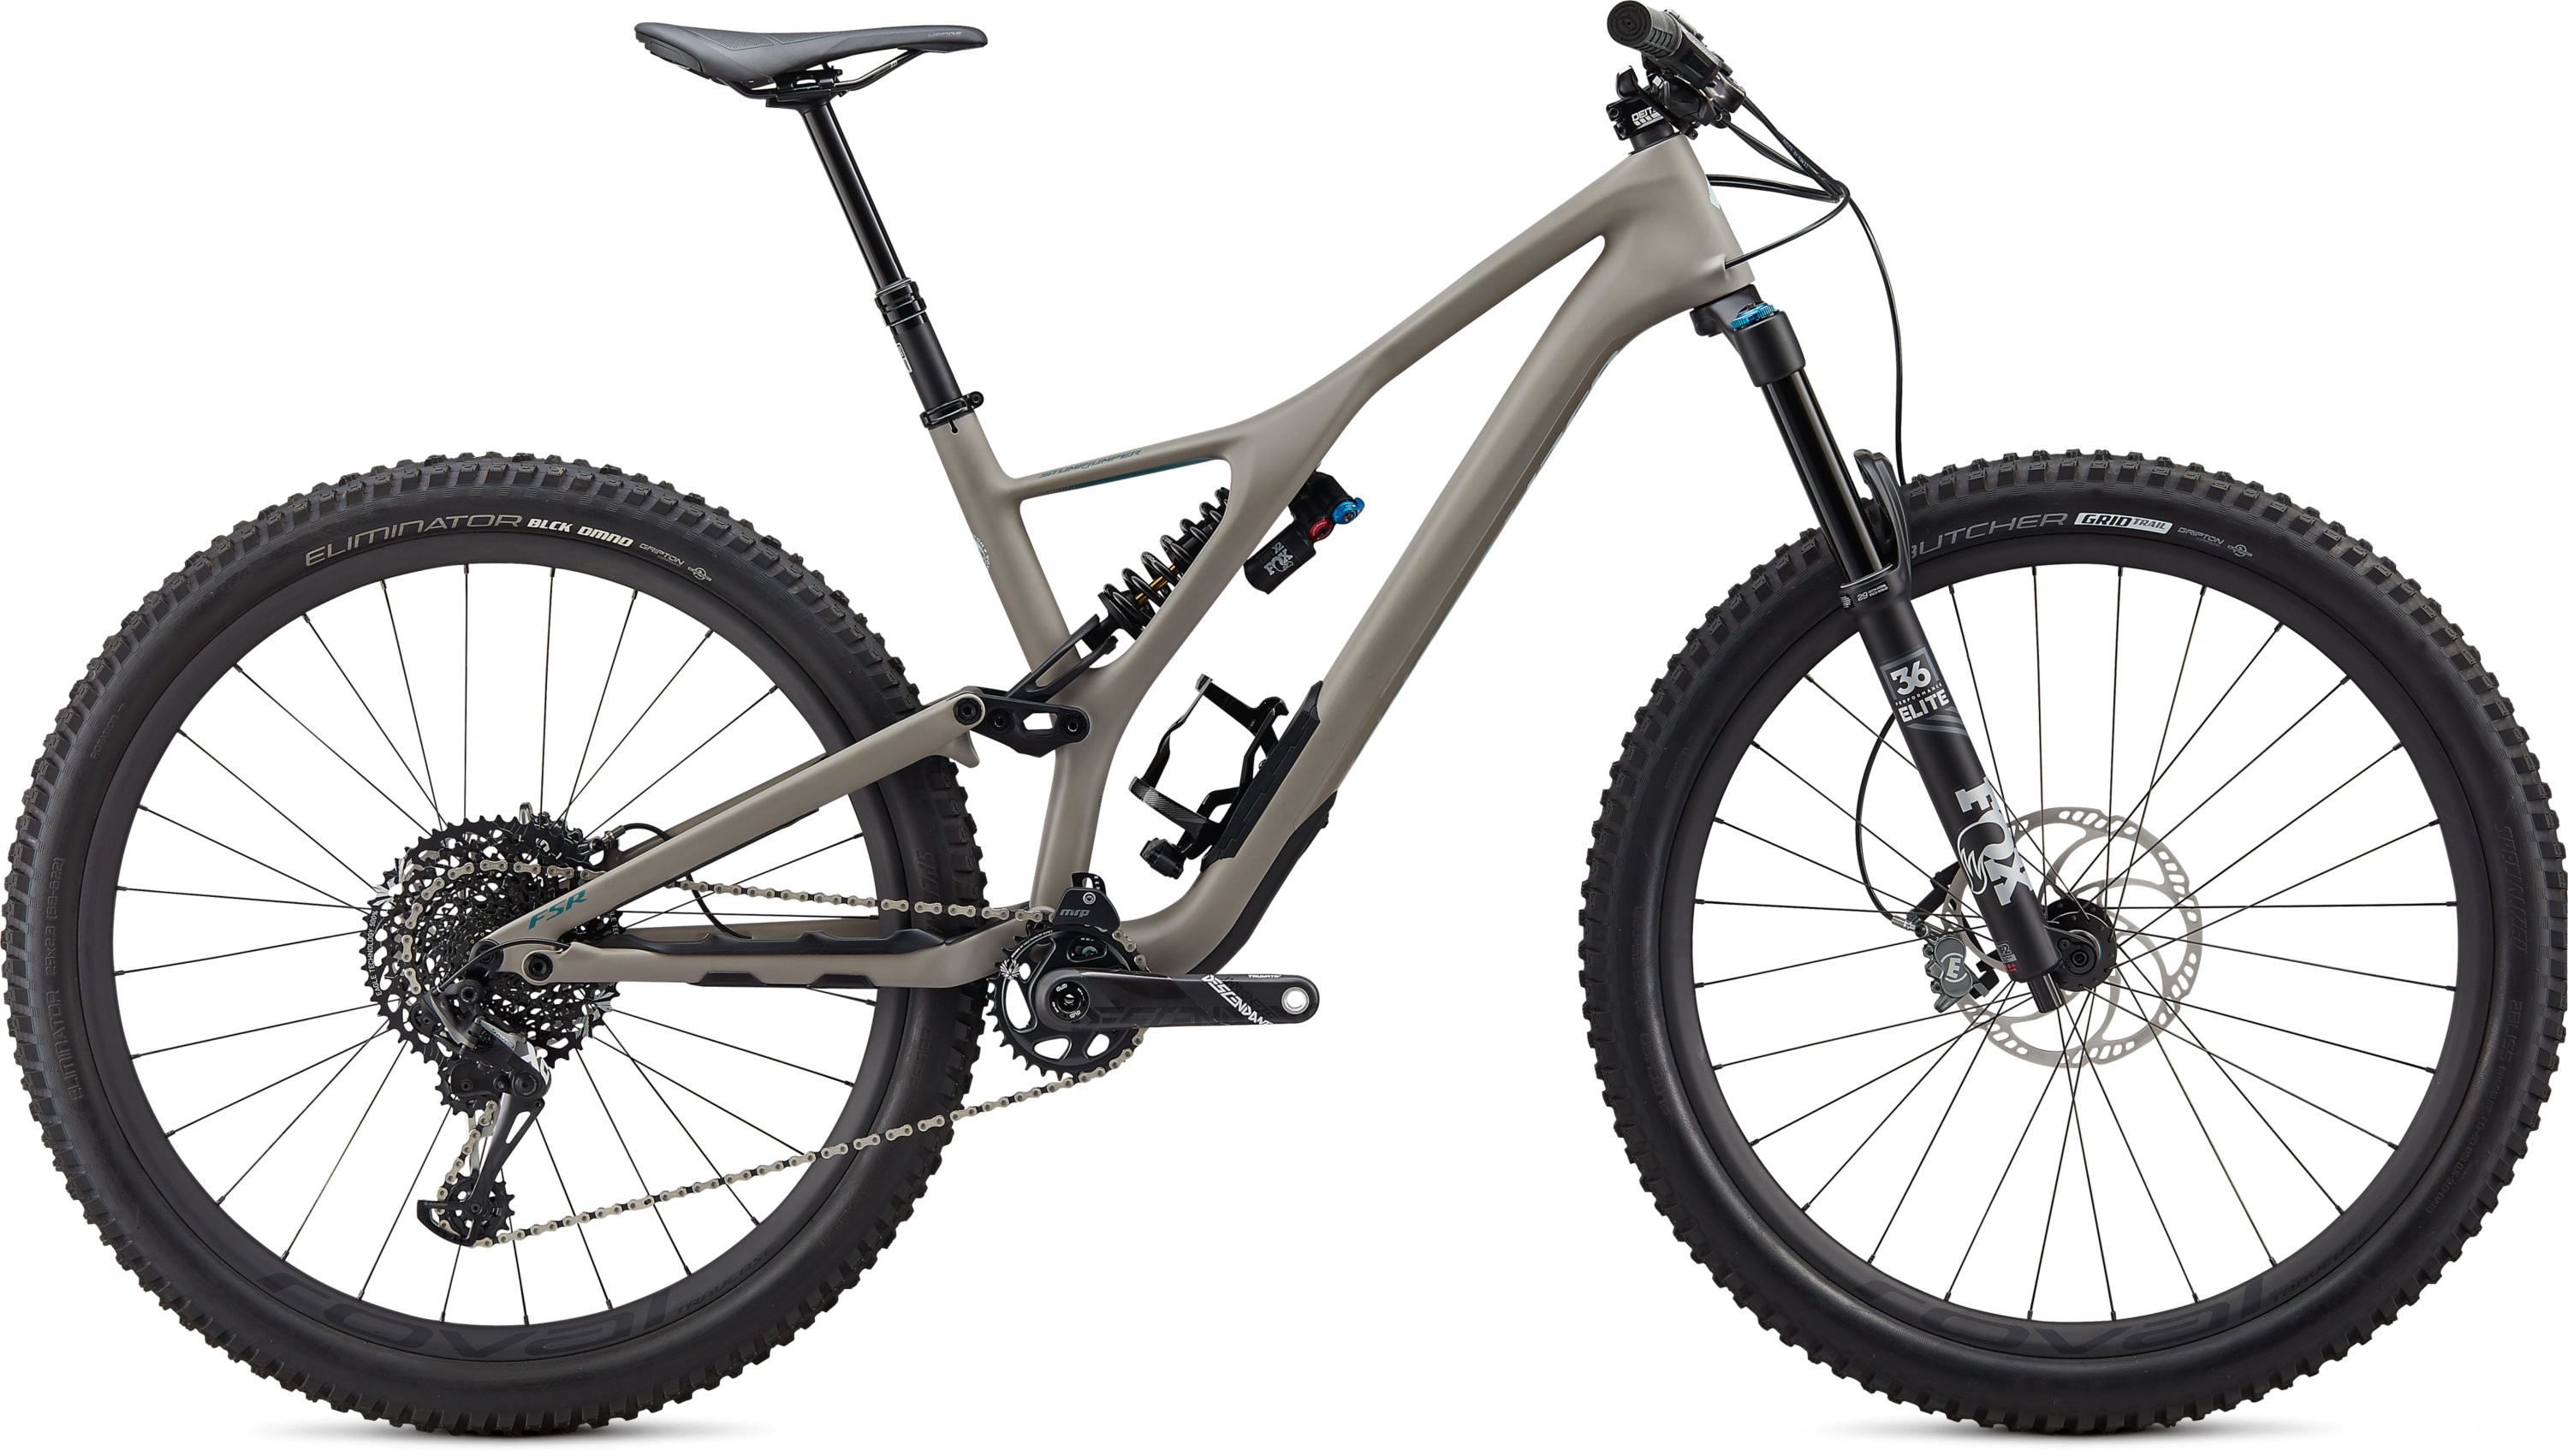 Stumpjumper Ltd Carbon Pemberton 29